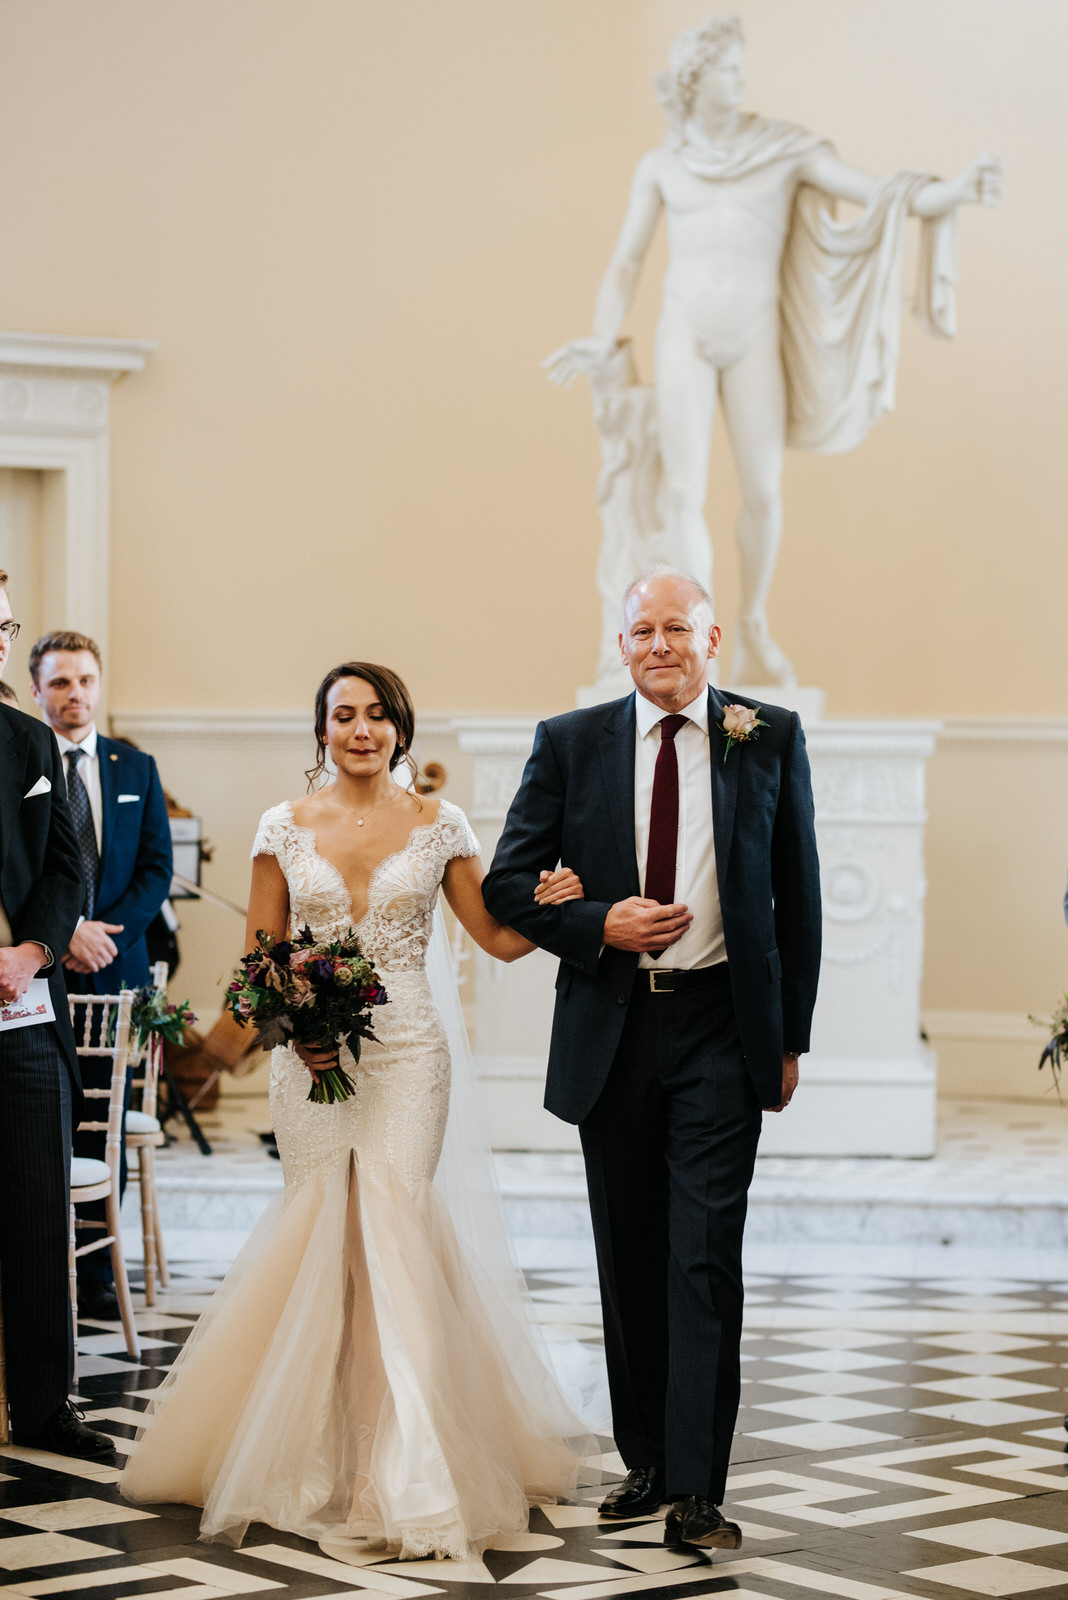 Bride about to start crying as she walks down aisle with step-dad